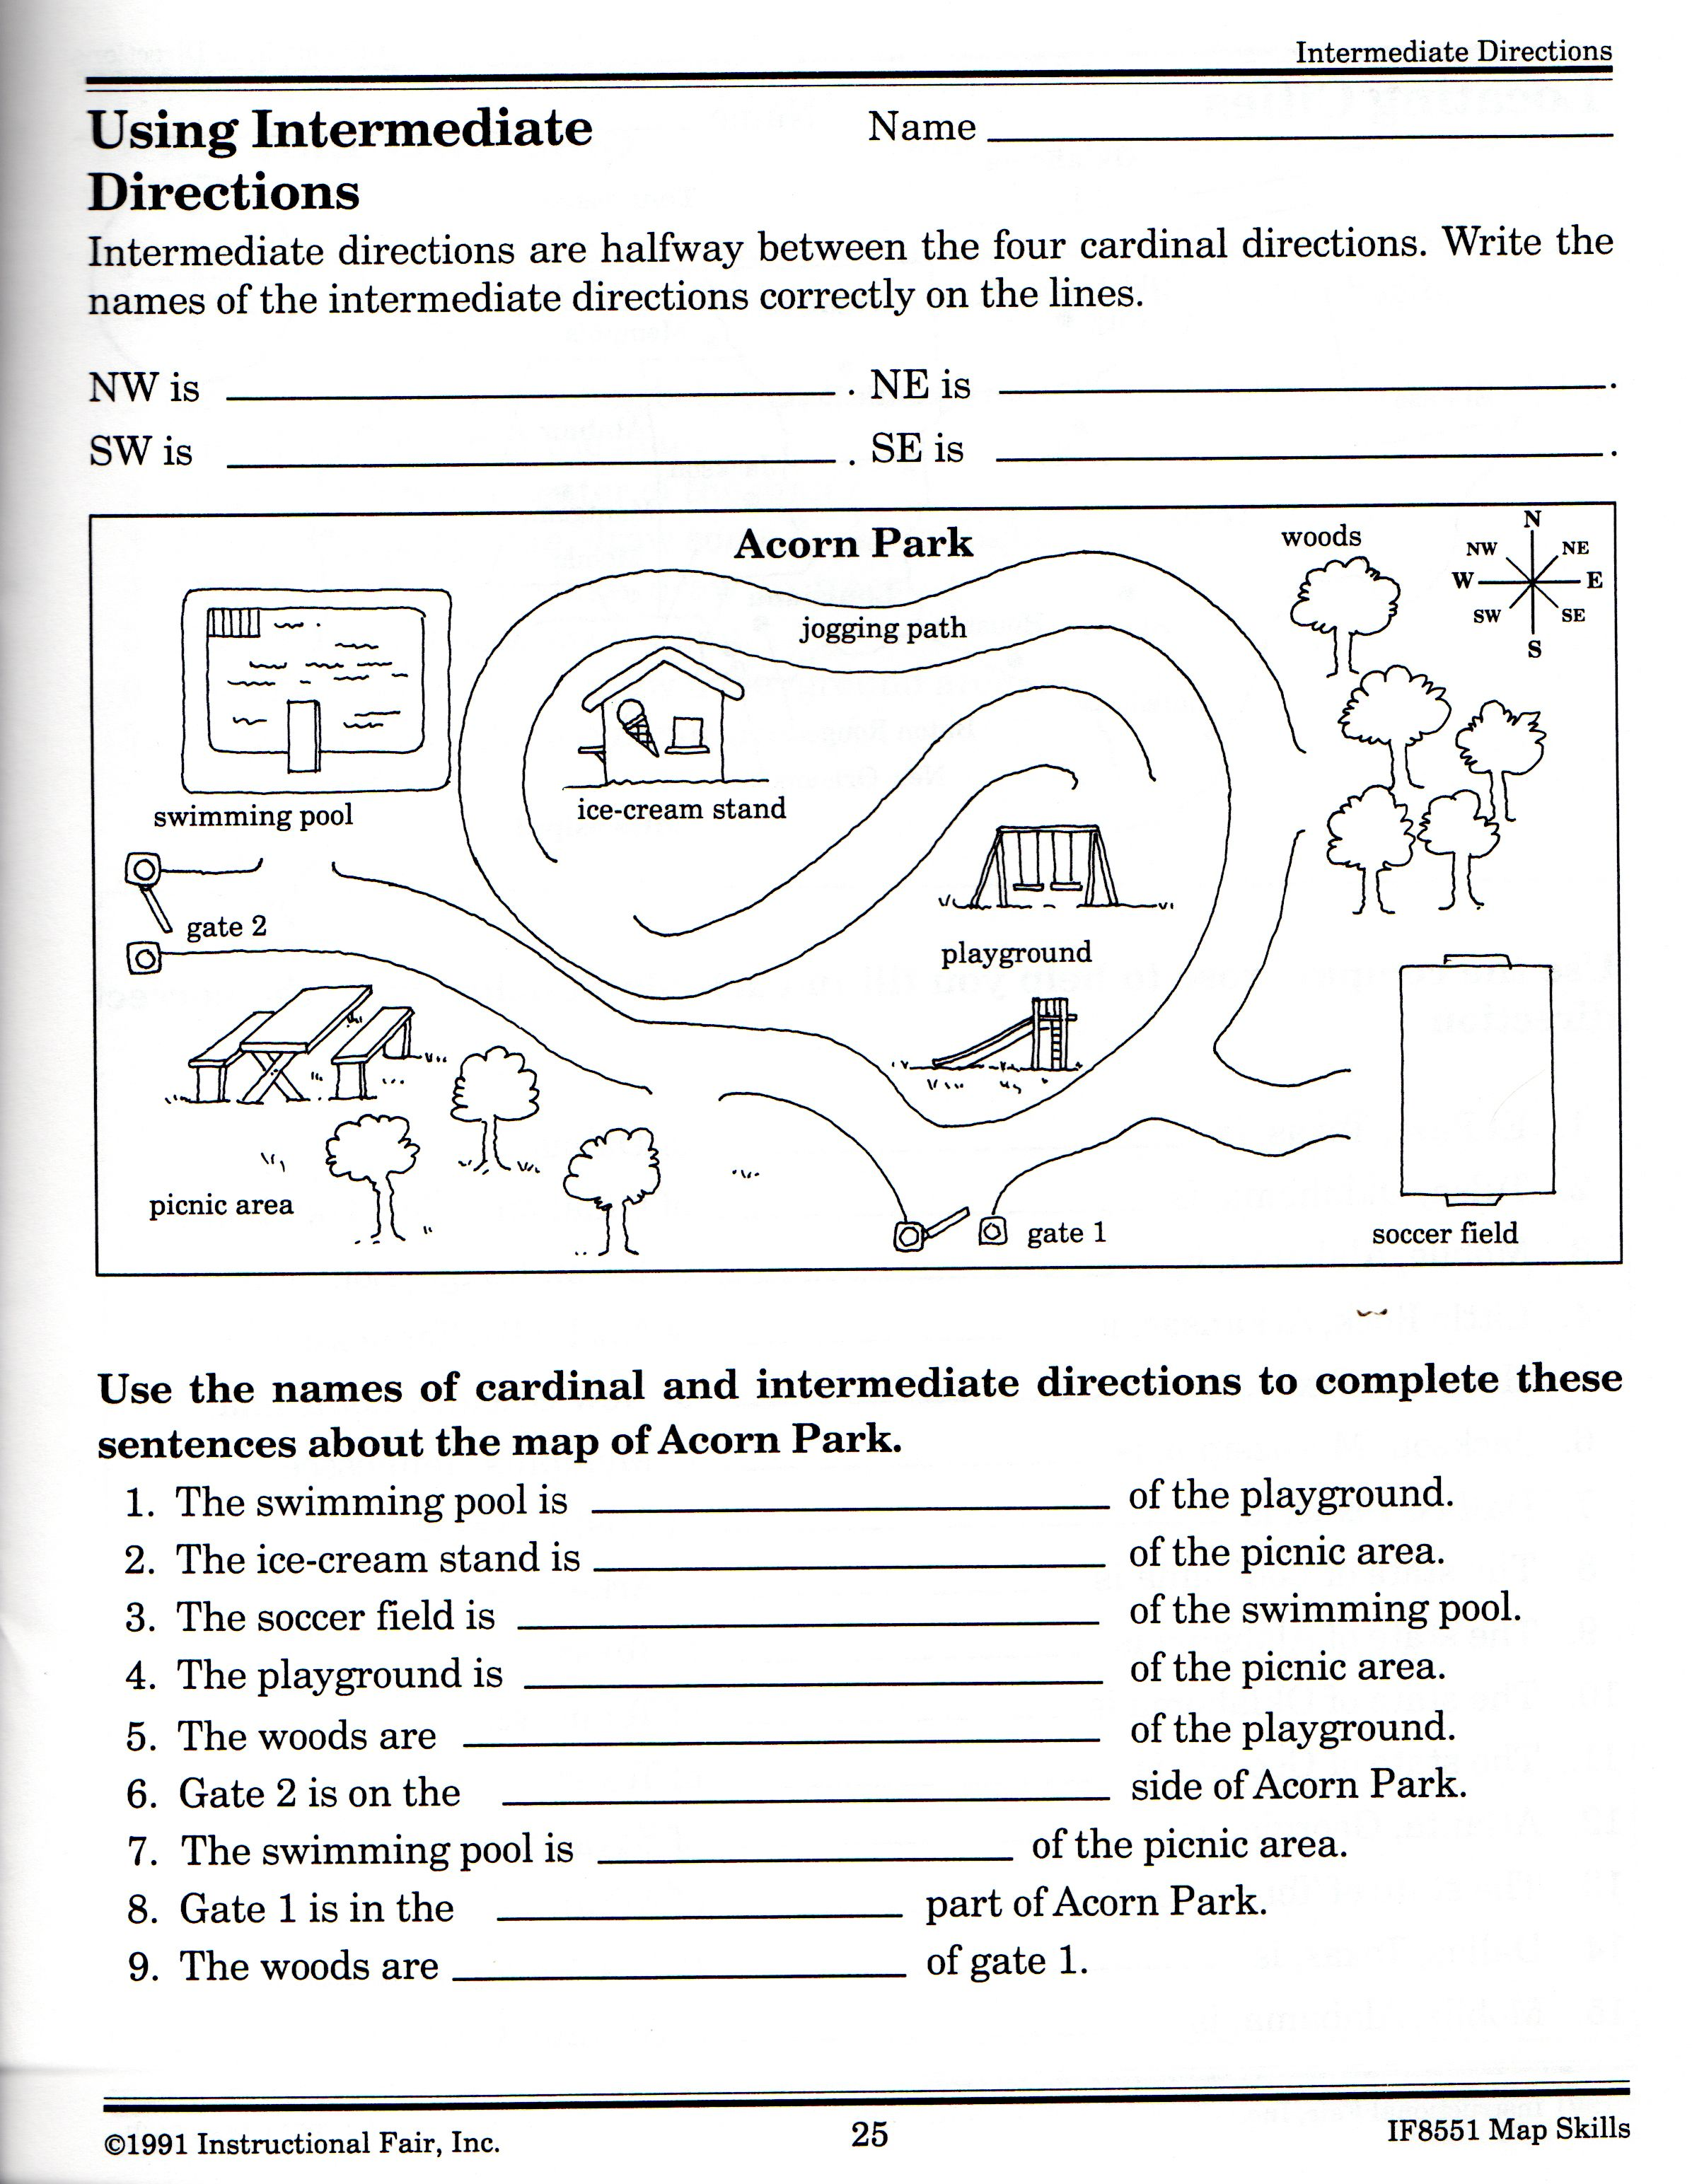 Intermediate Directions Worksheet | School | Pinterest | Volksschule ...